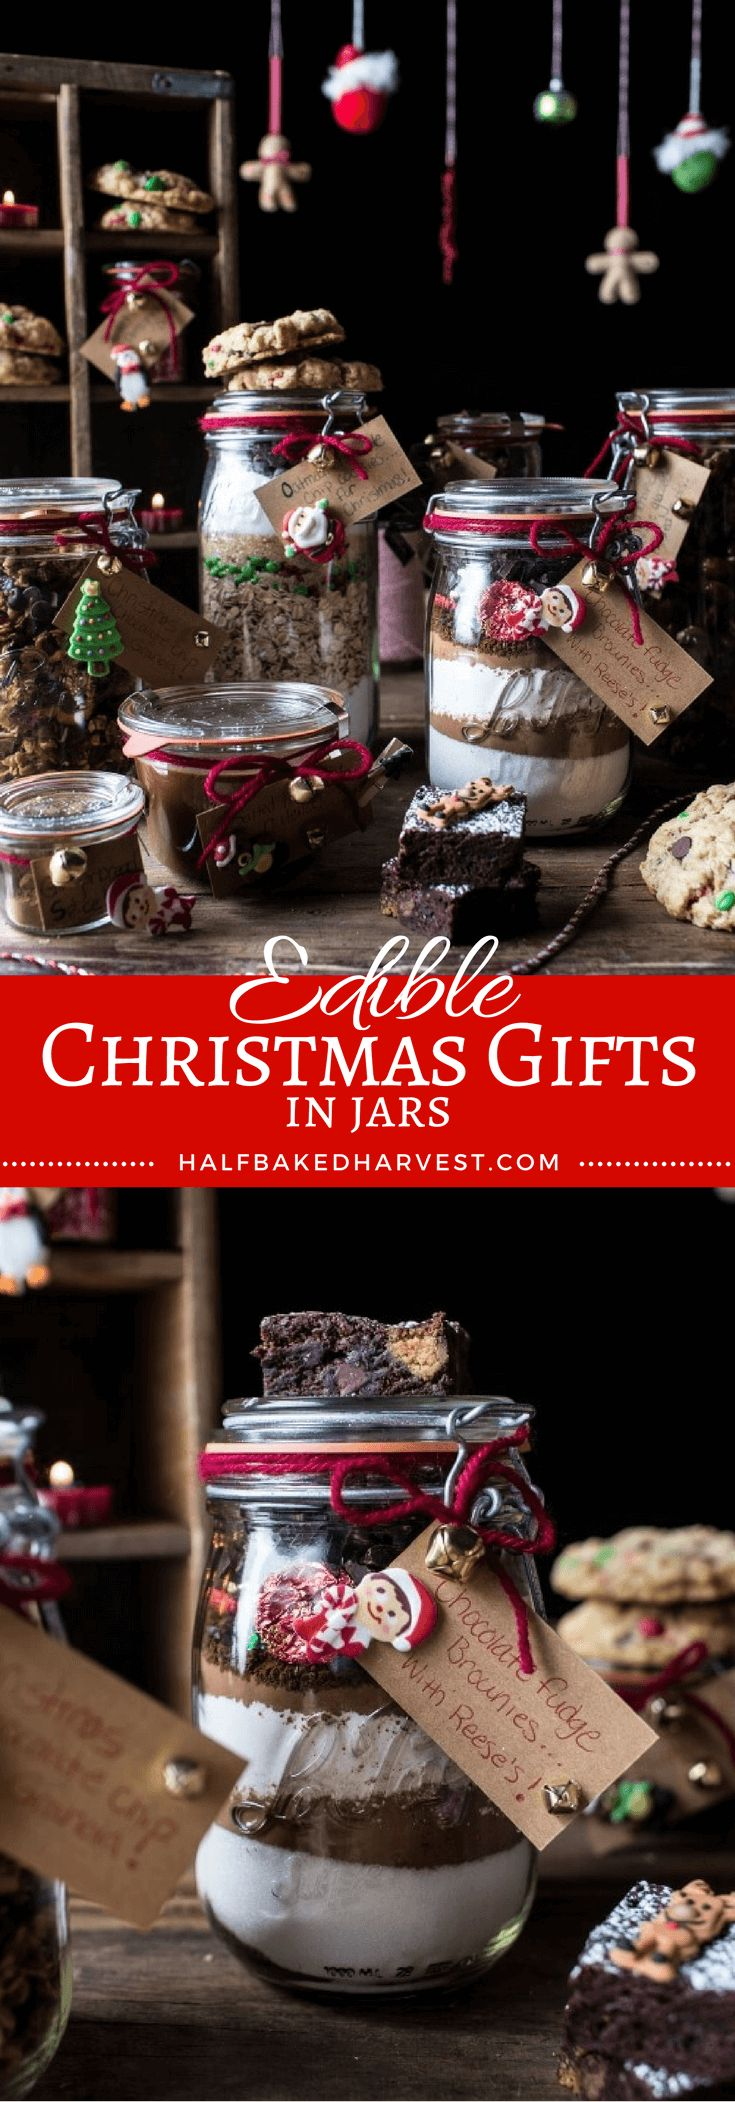 The perfect edible Christmas Gifts in Jars | halfbakedharvest.com @hbharvest